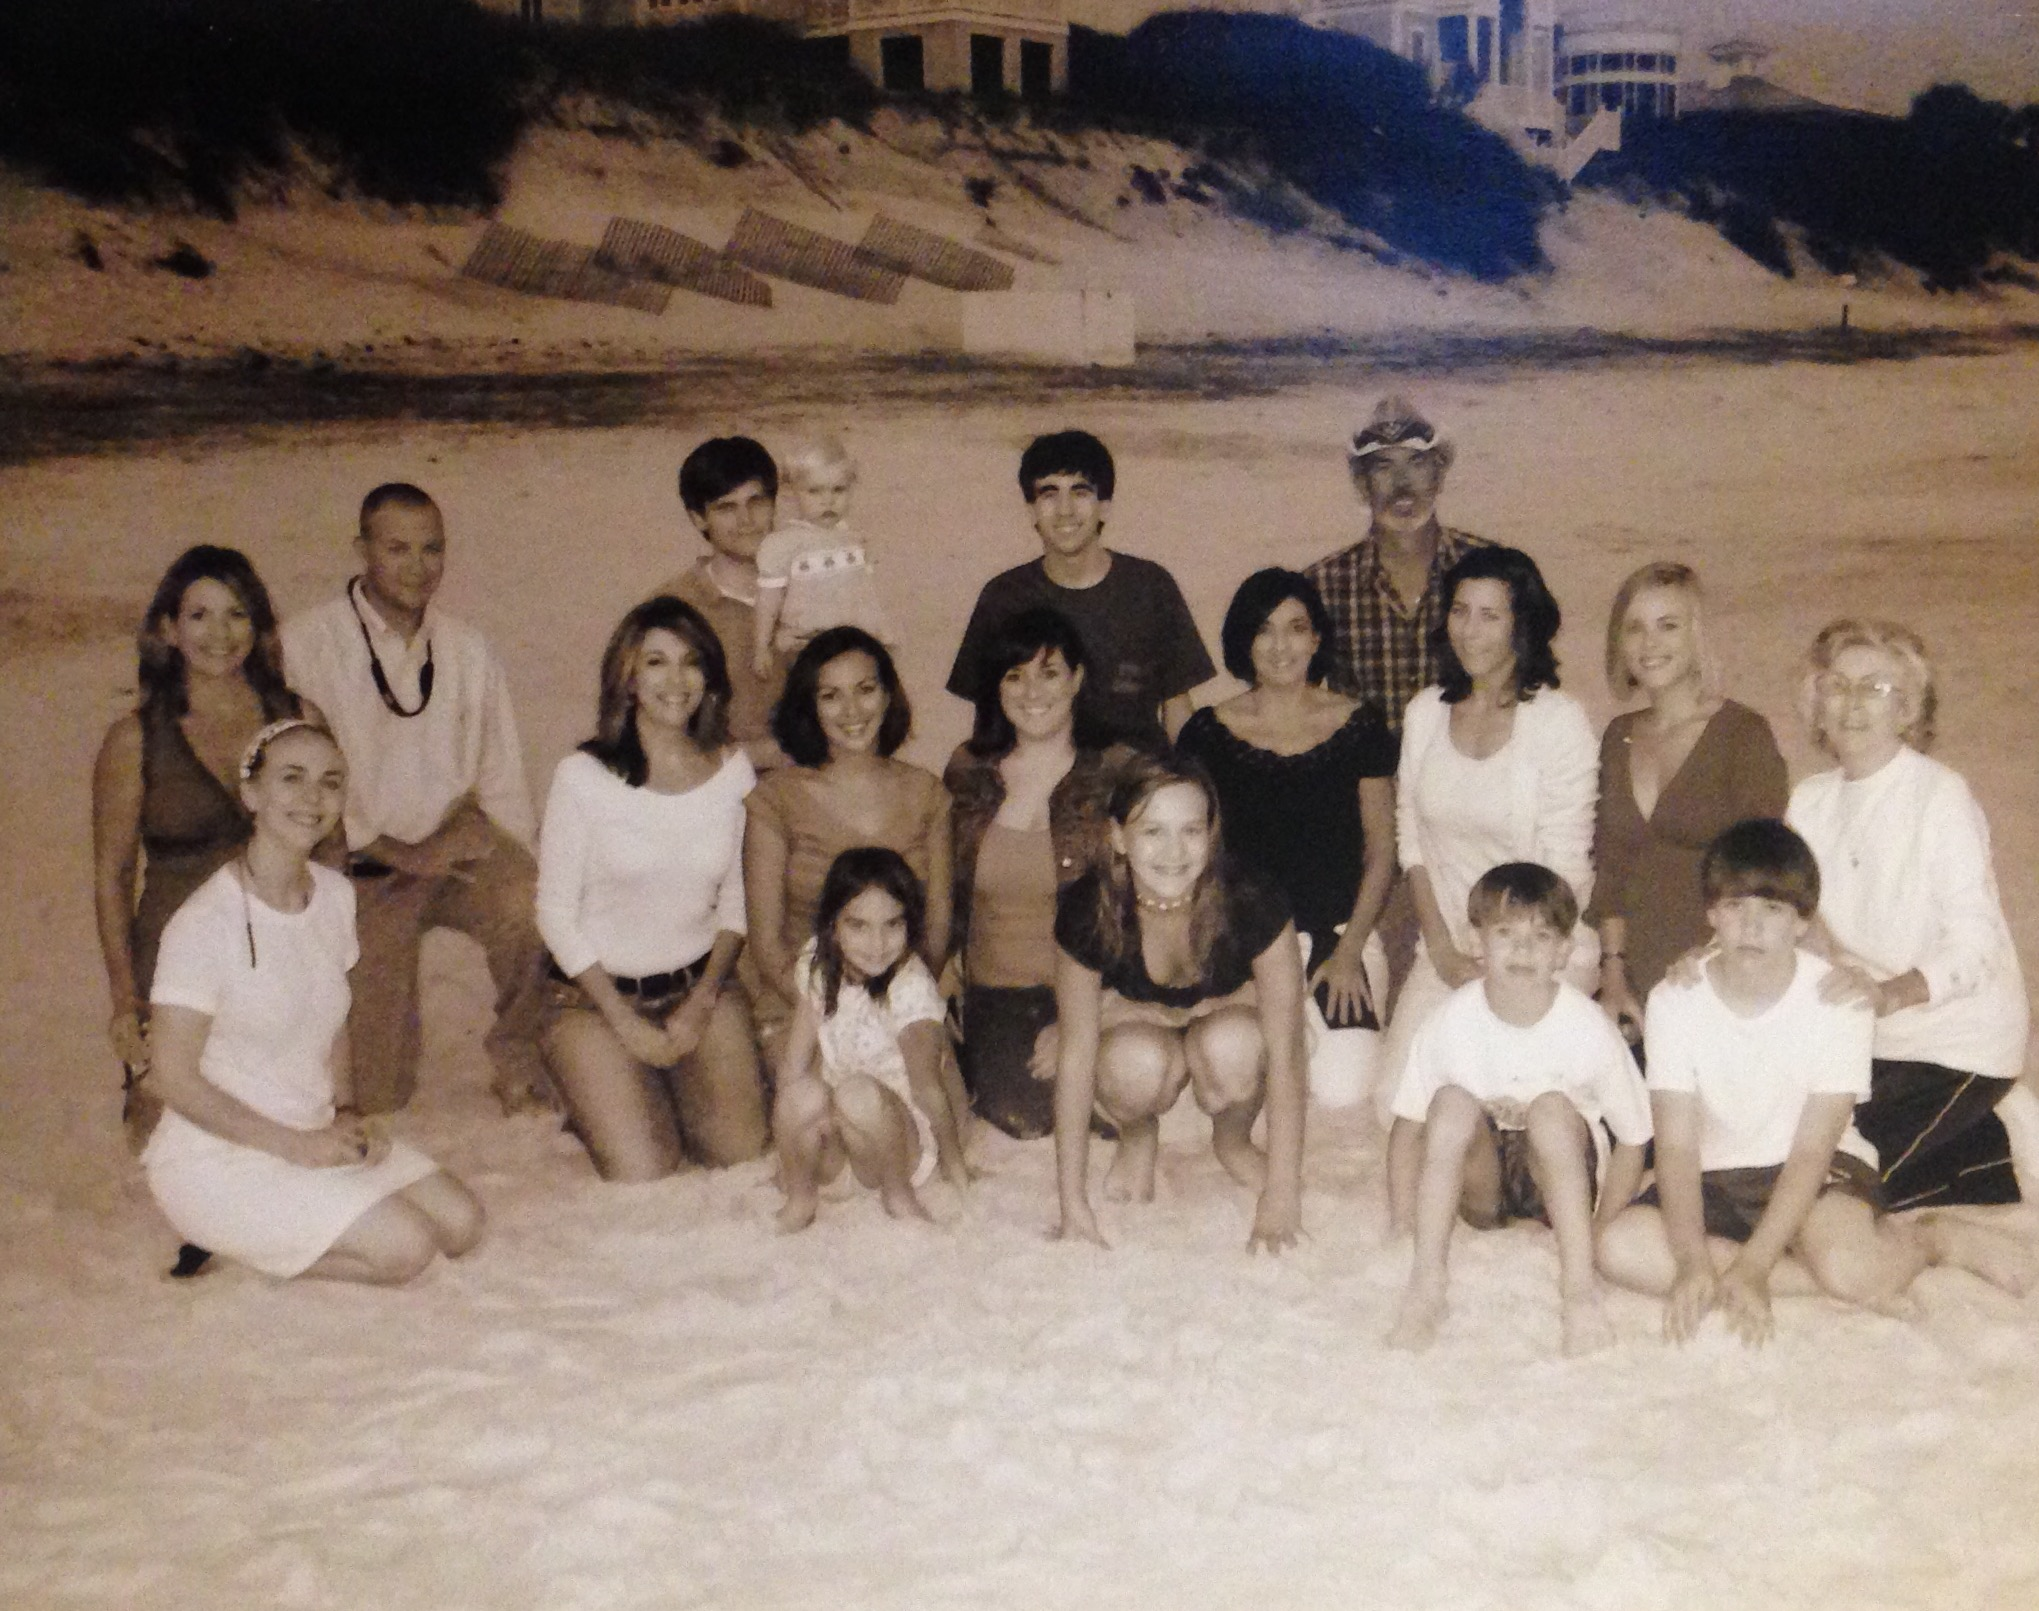 10 years ago this month-Mom's 50th in Seaside. Grandmother with her 4 daughters, most of her grandchildren,missing Jim, her son, and a couple grandkids and dads. October 2006